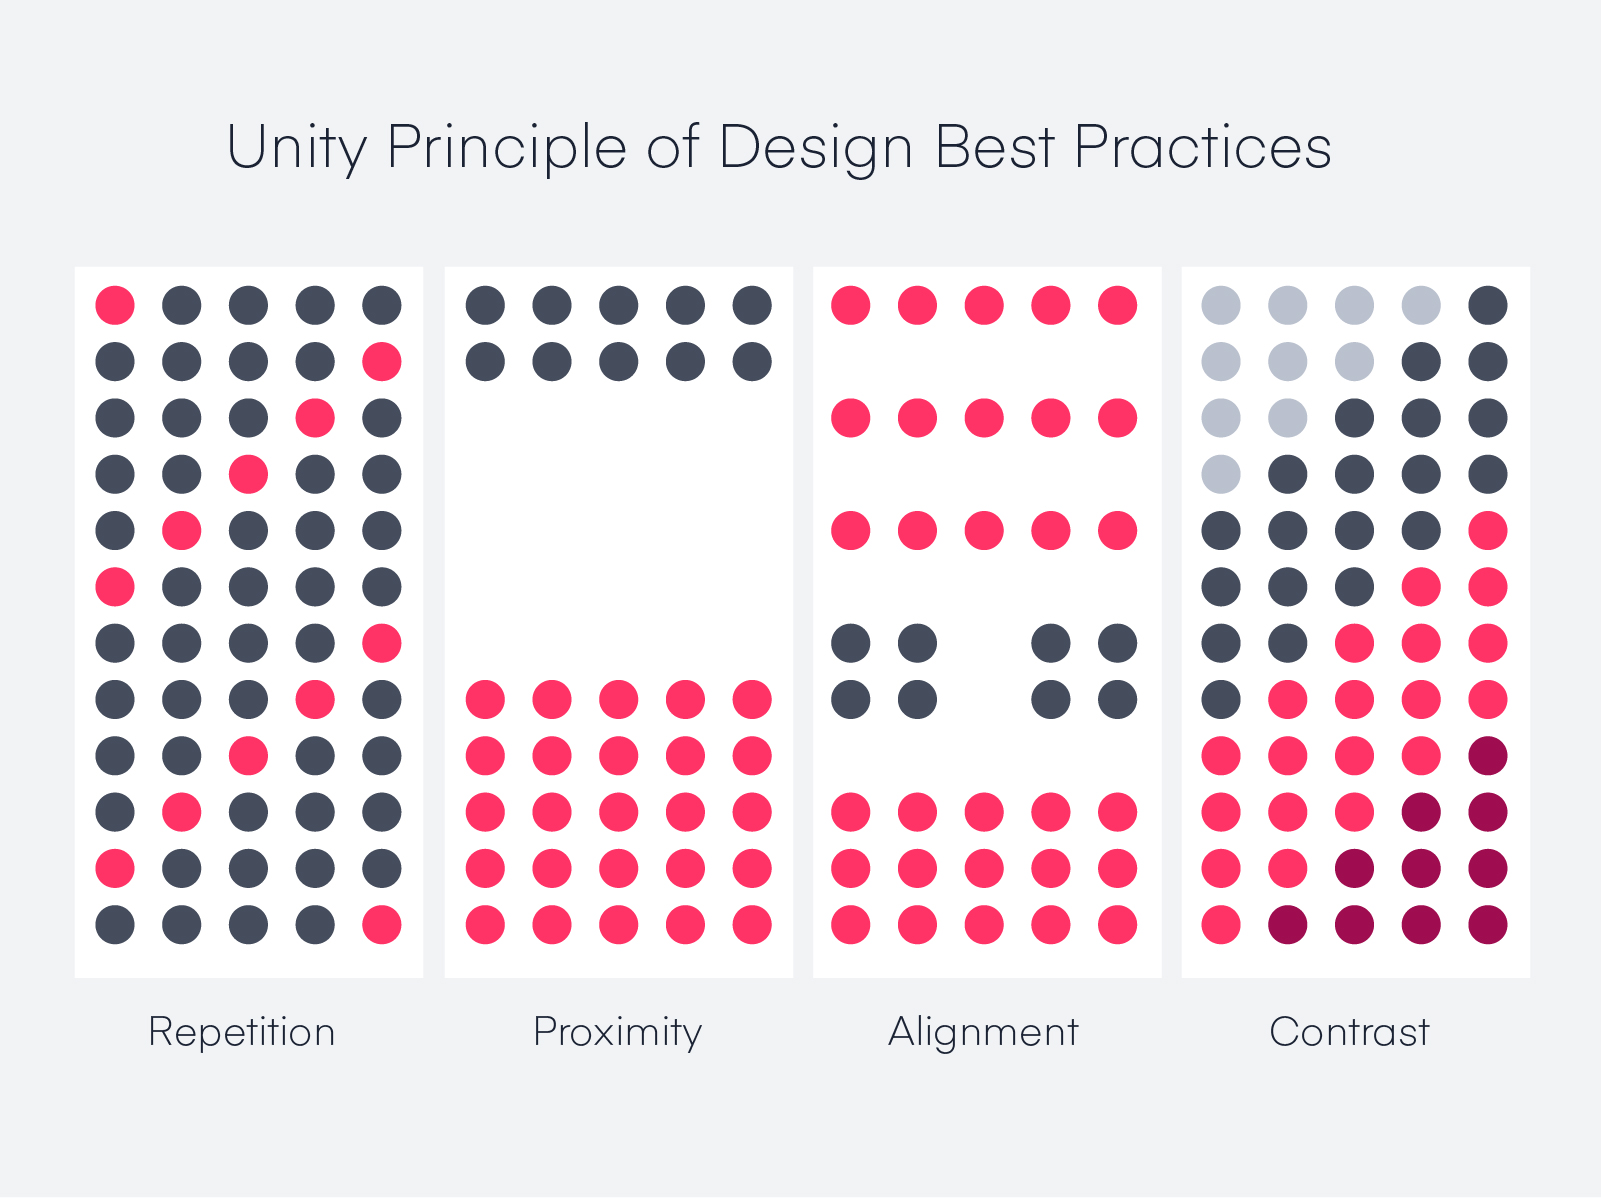 Unity Principle Of Design Design Defined Invision